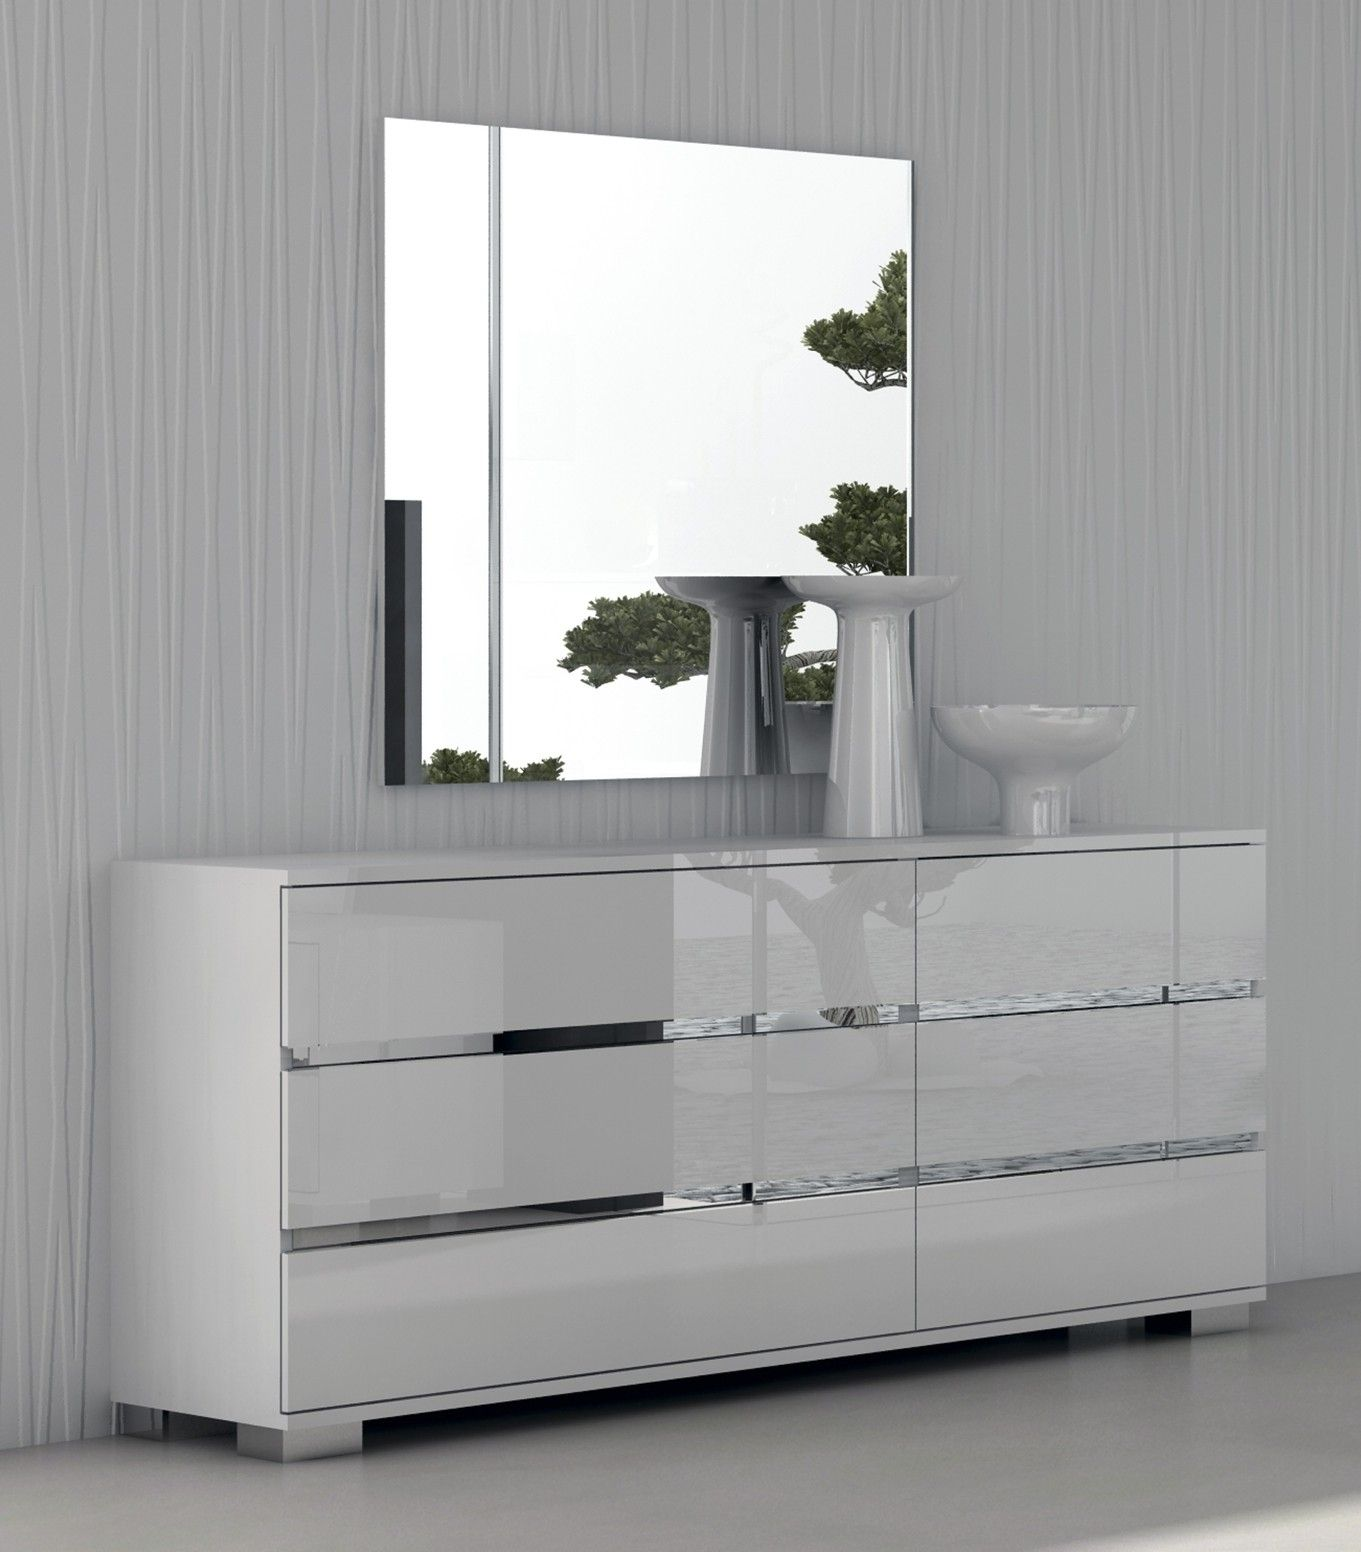 This Dresser And Mirror Combination Looks Amazing I Ve Never Seen